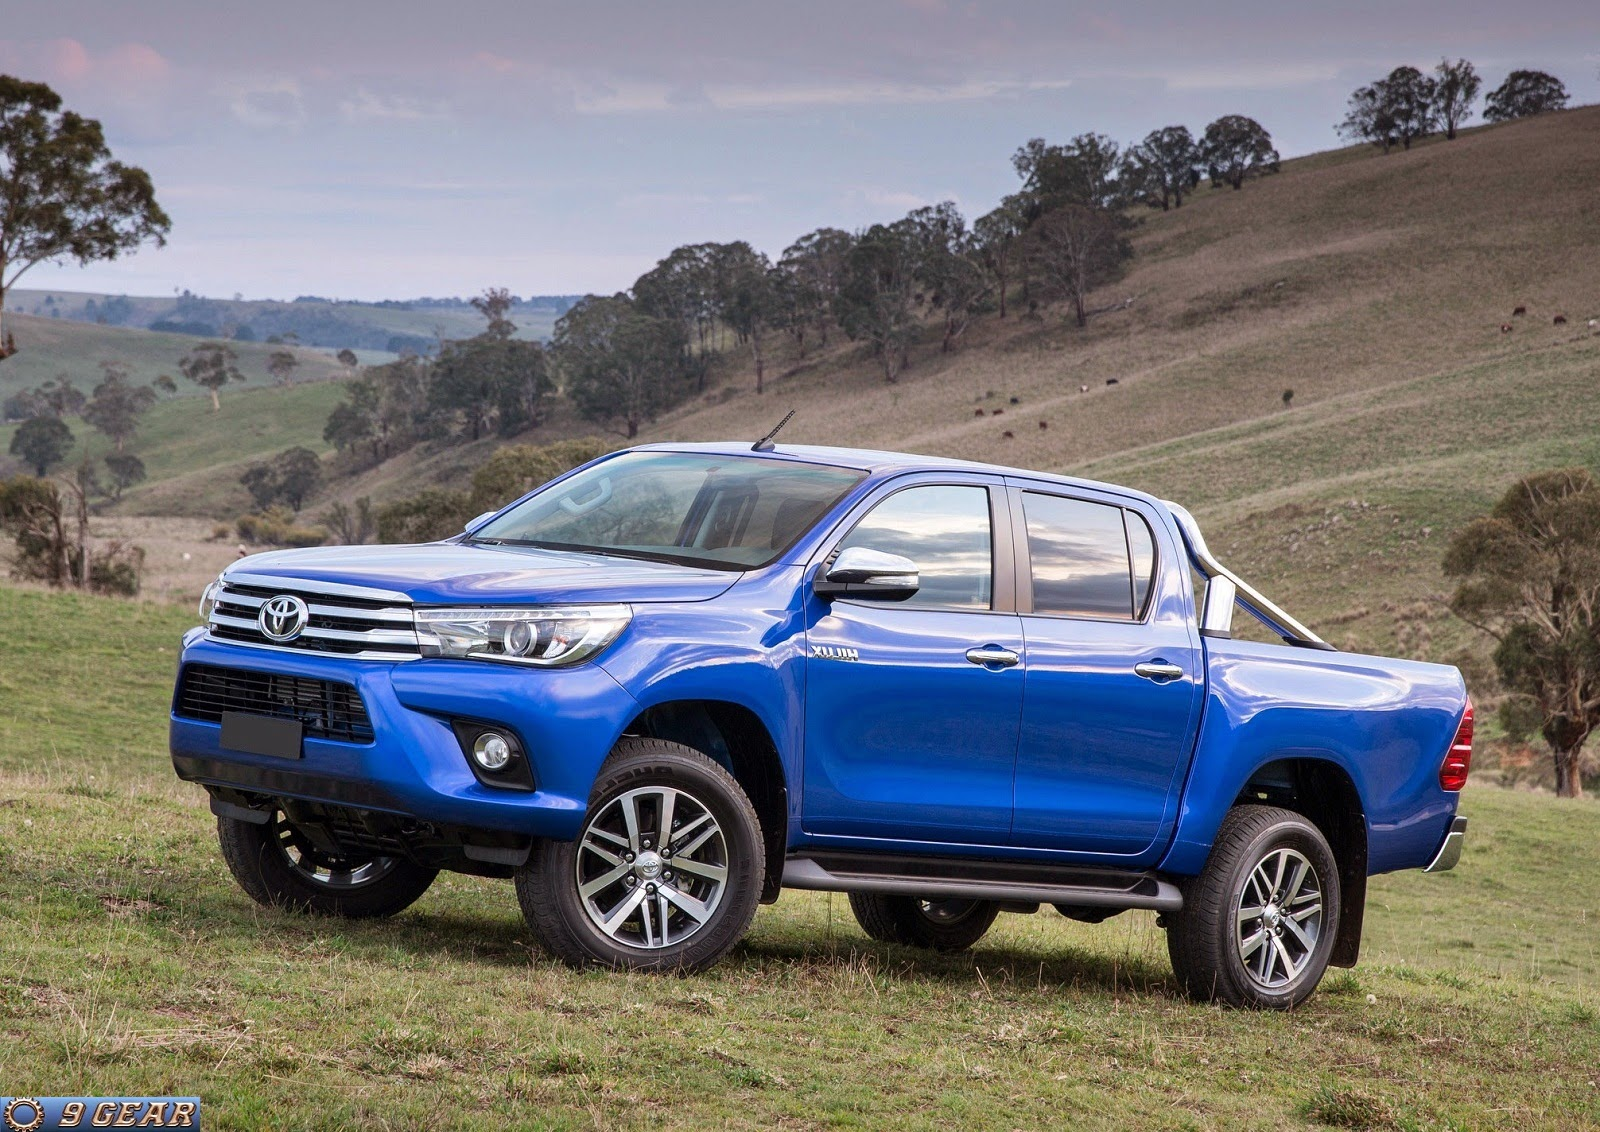 Toyota Diesel Truck >> 2016 Toyota Hilux Pickup Truck diesel | Car Reviews | New Car Pictures for 2018, 2019